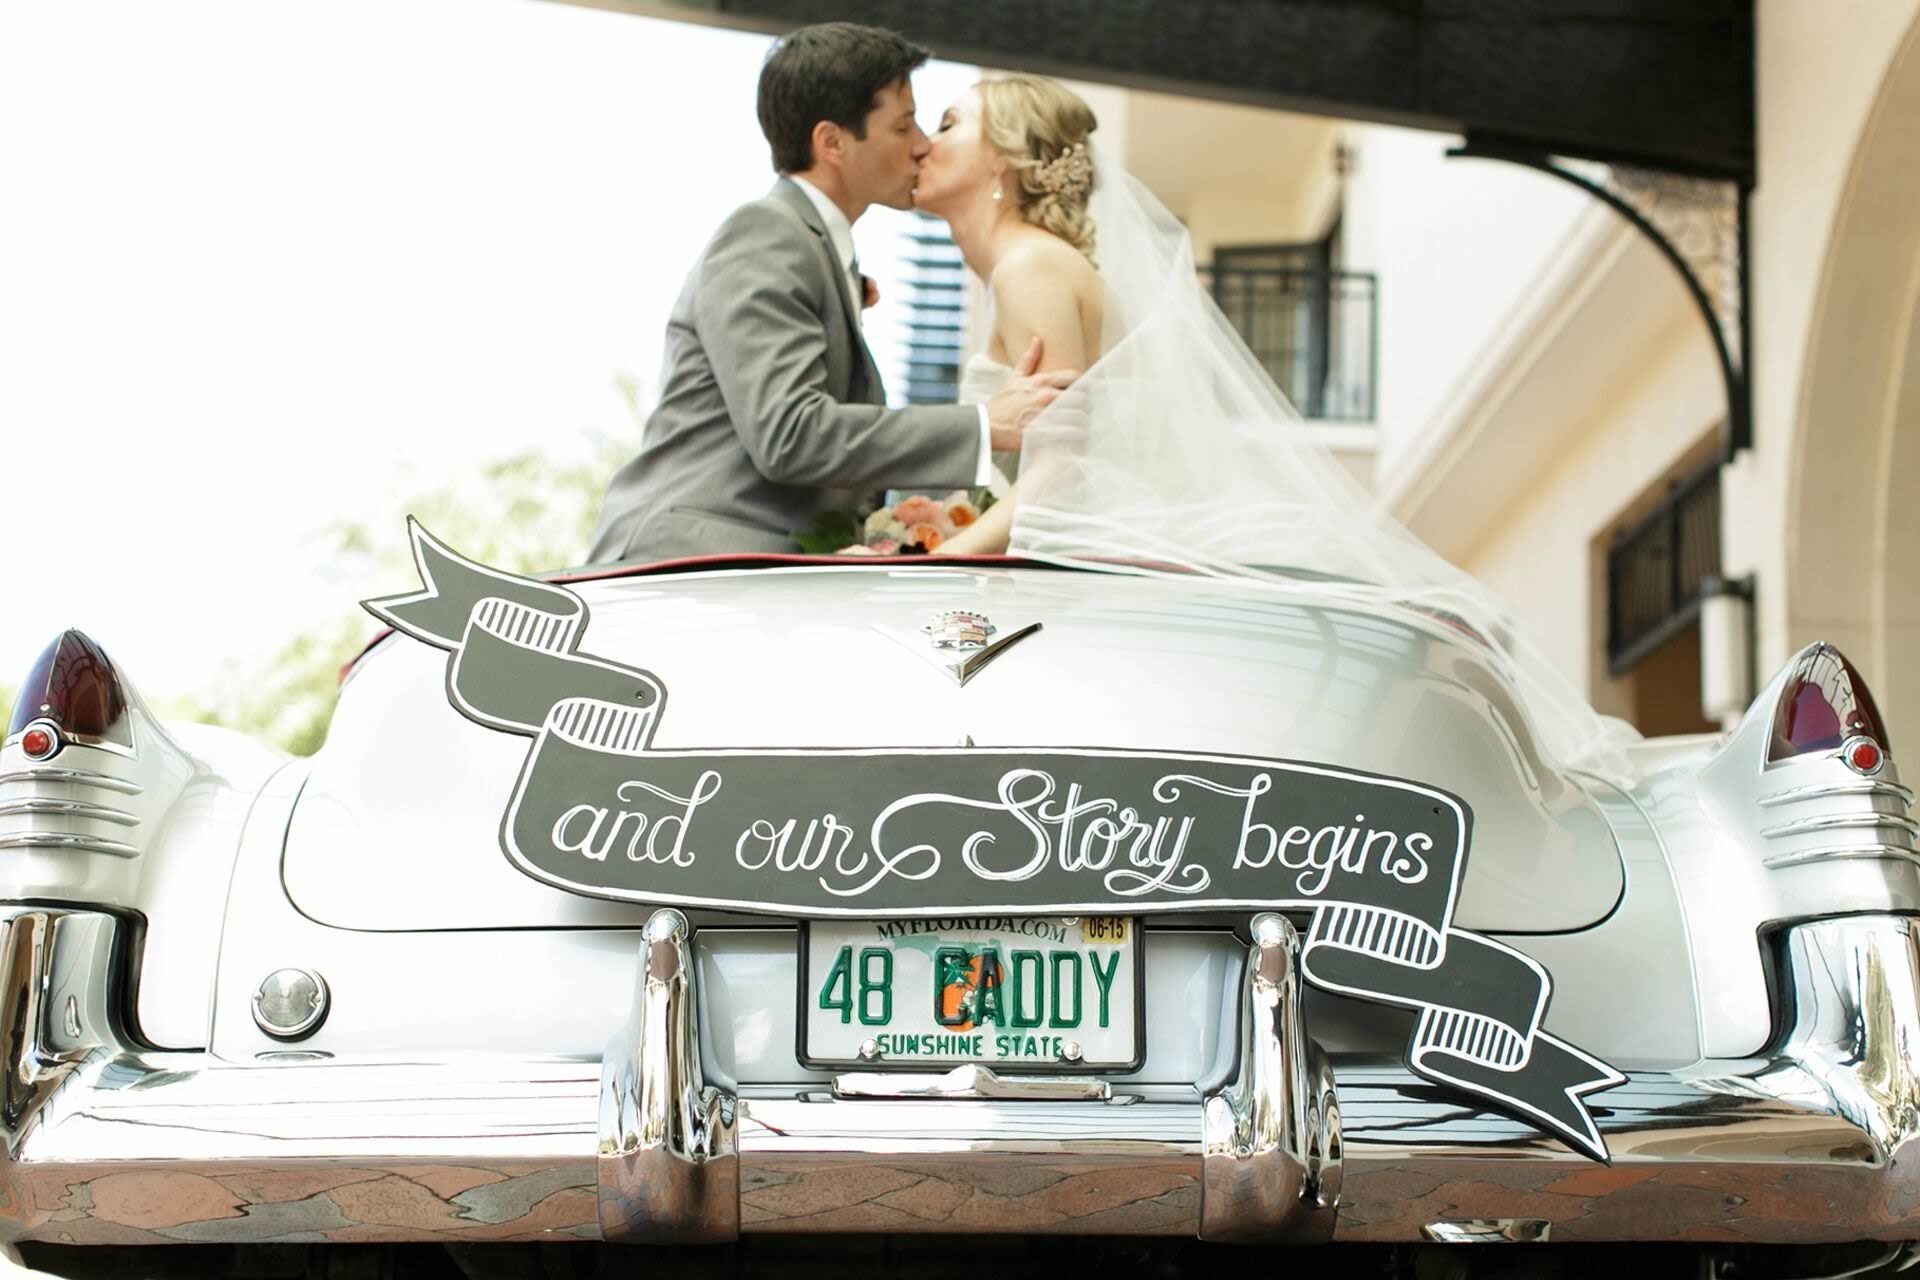 VIP Wedding Transportation - Image provided by: BumbyPhotography.com